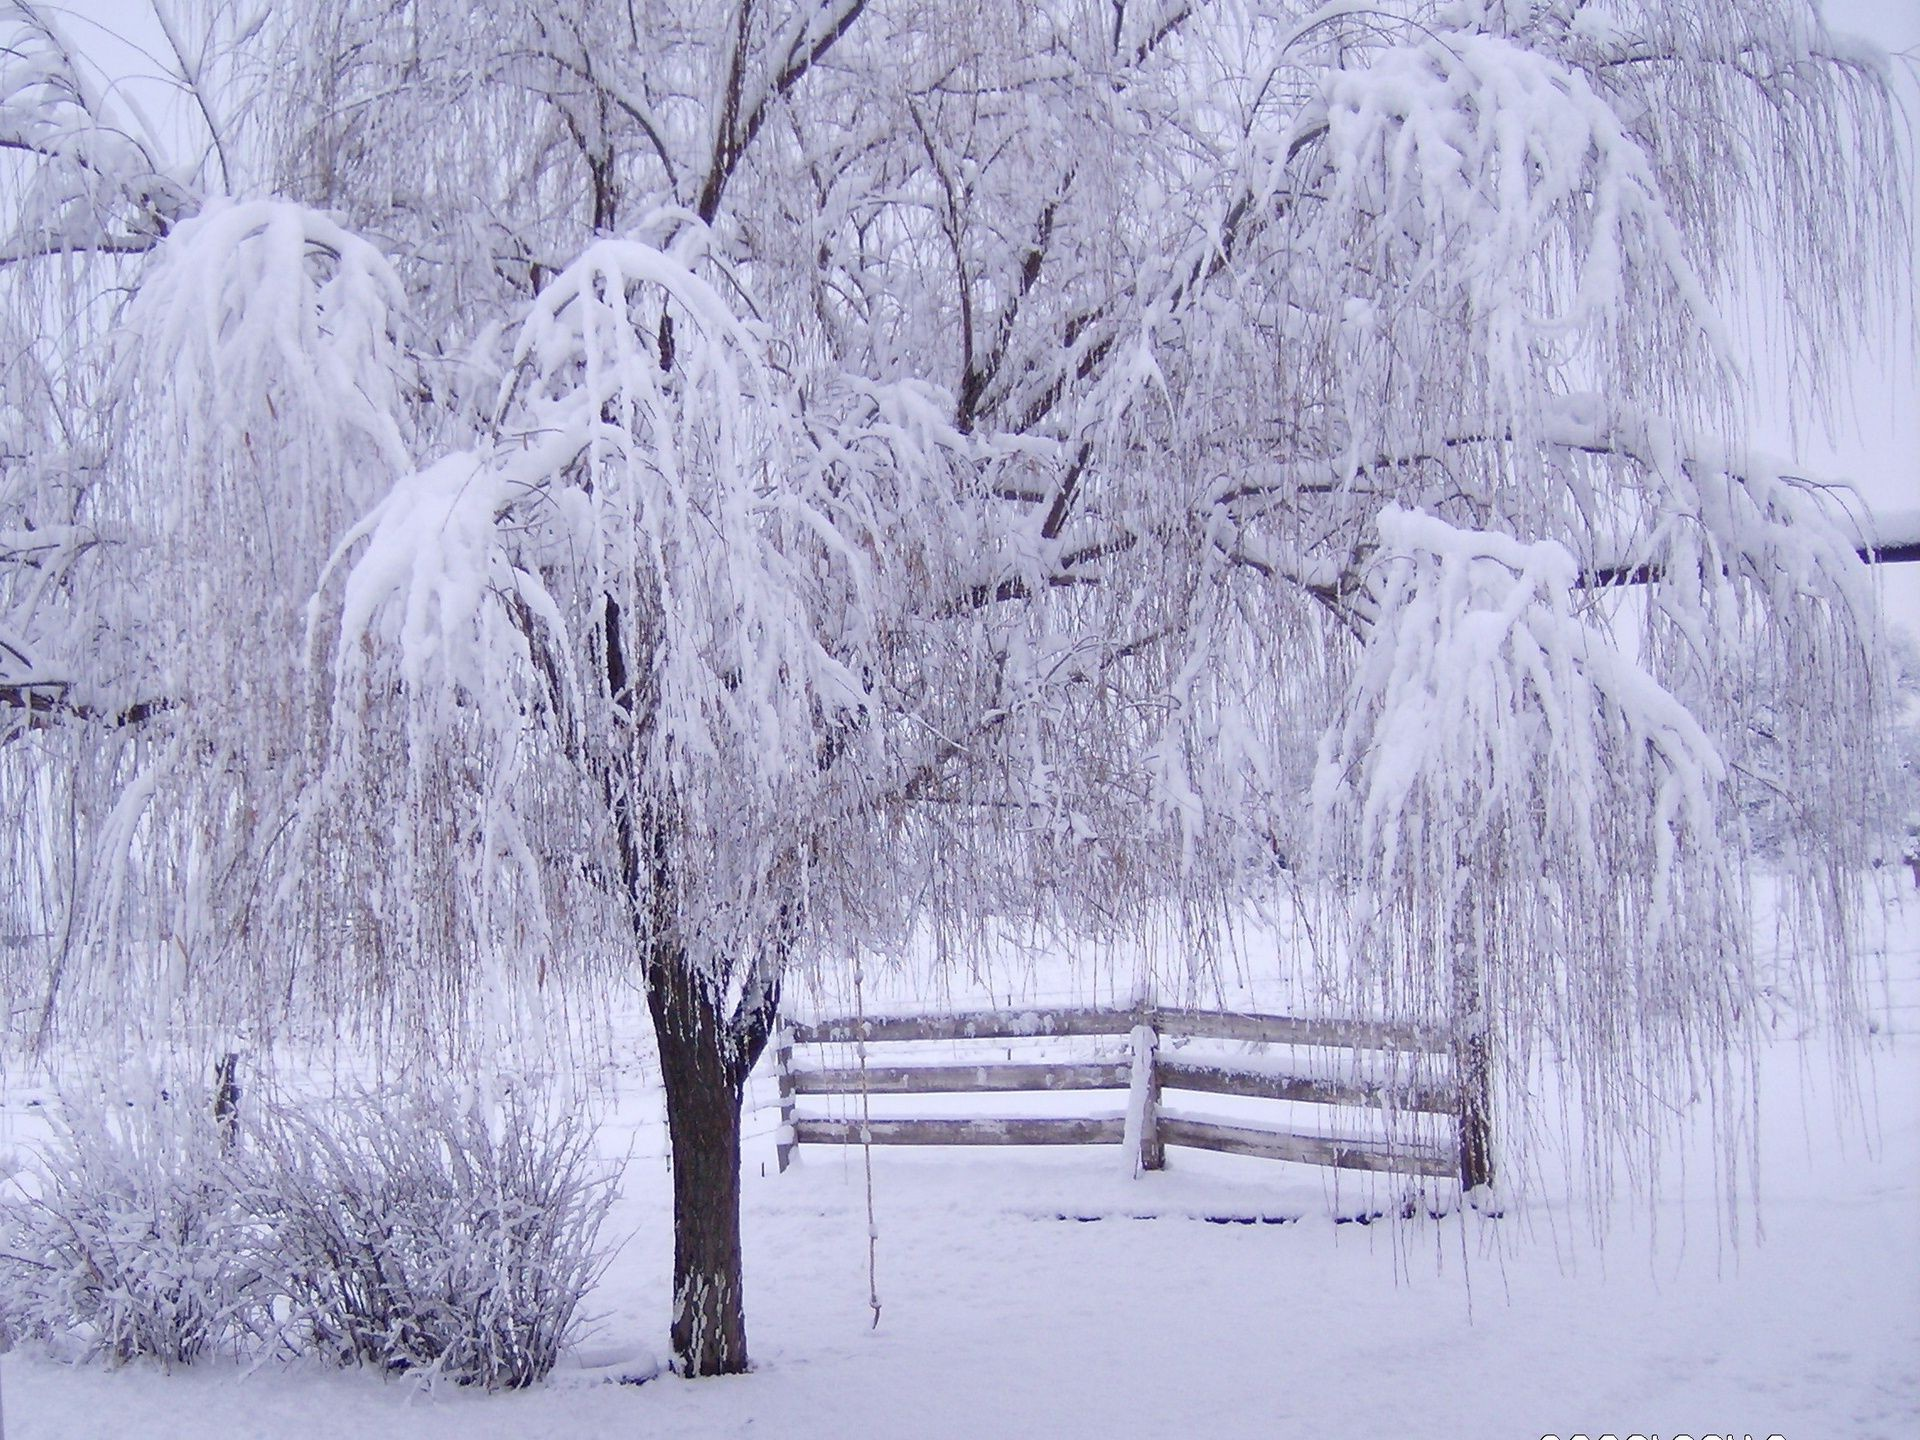 winter snow frost cold frozen wood season ice weather tree landscape snow-white frosty snowy icy snowstorm scenic scene branch